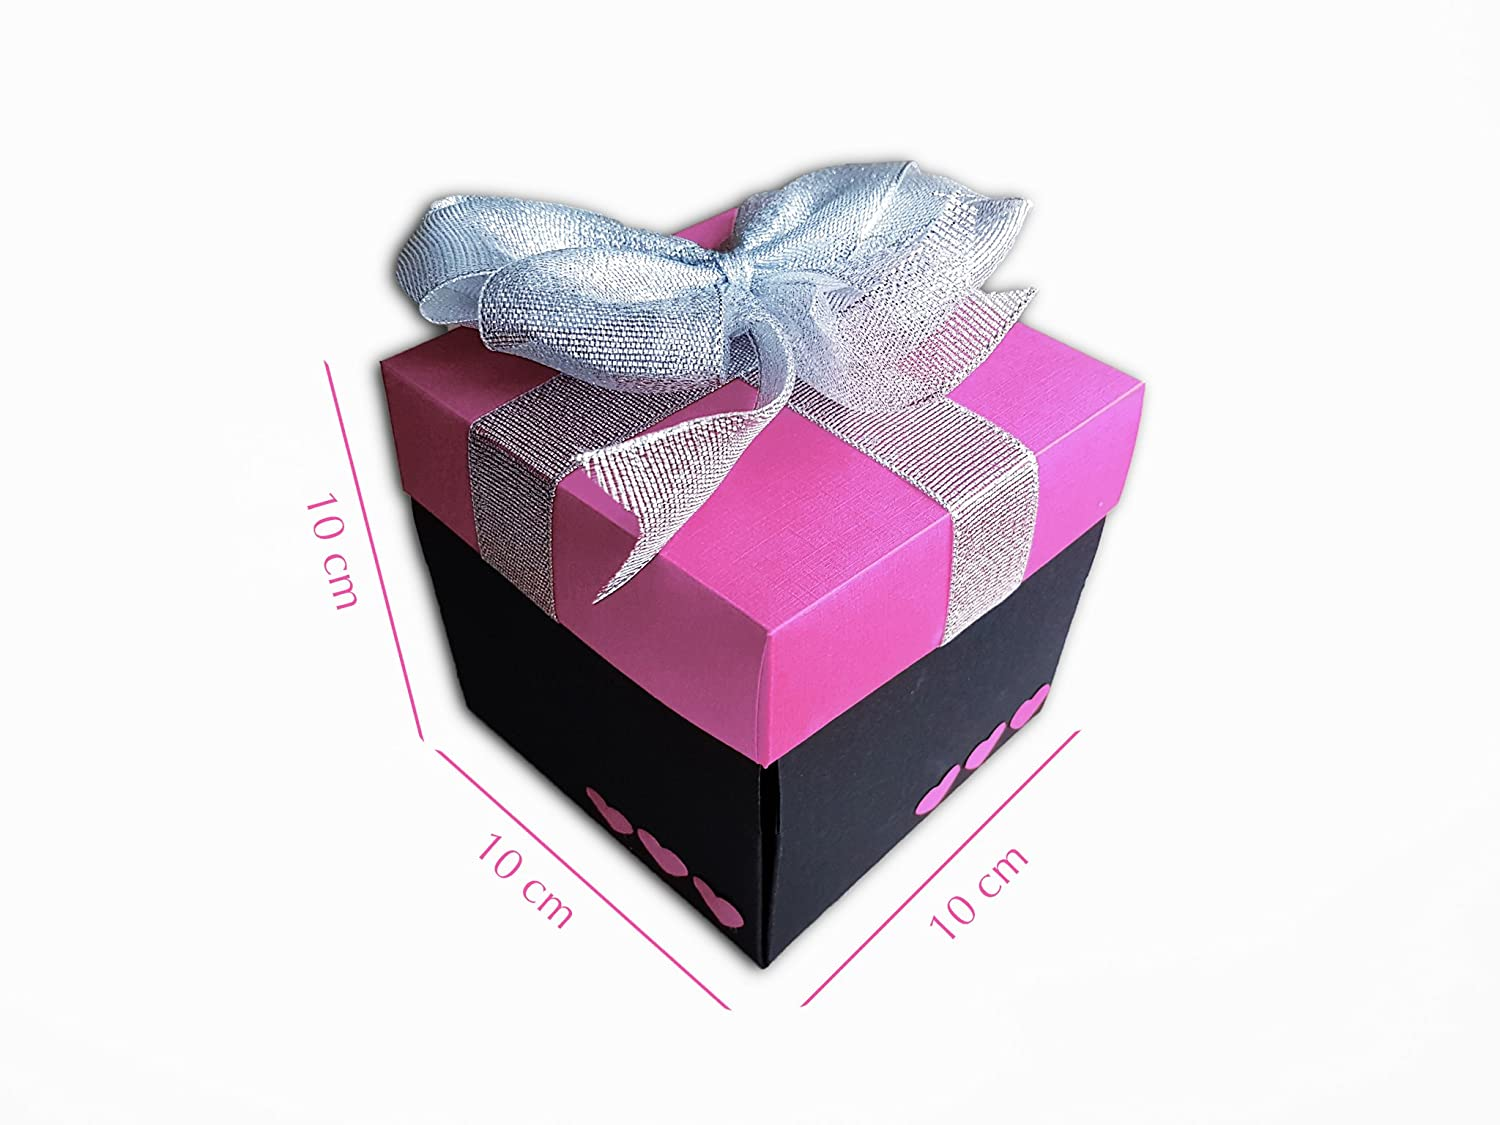 Amazon Love Explosion Gift Box Photo Album Pink 100 Handmade With Craft Paper Arts Crafts Sewing